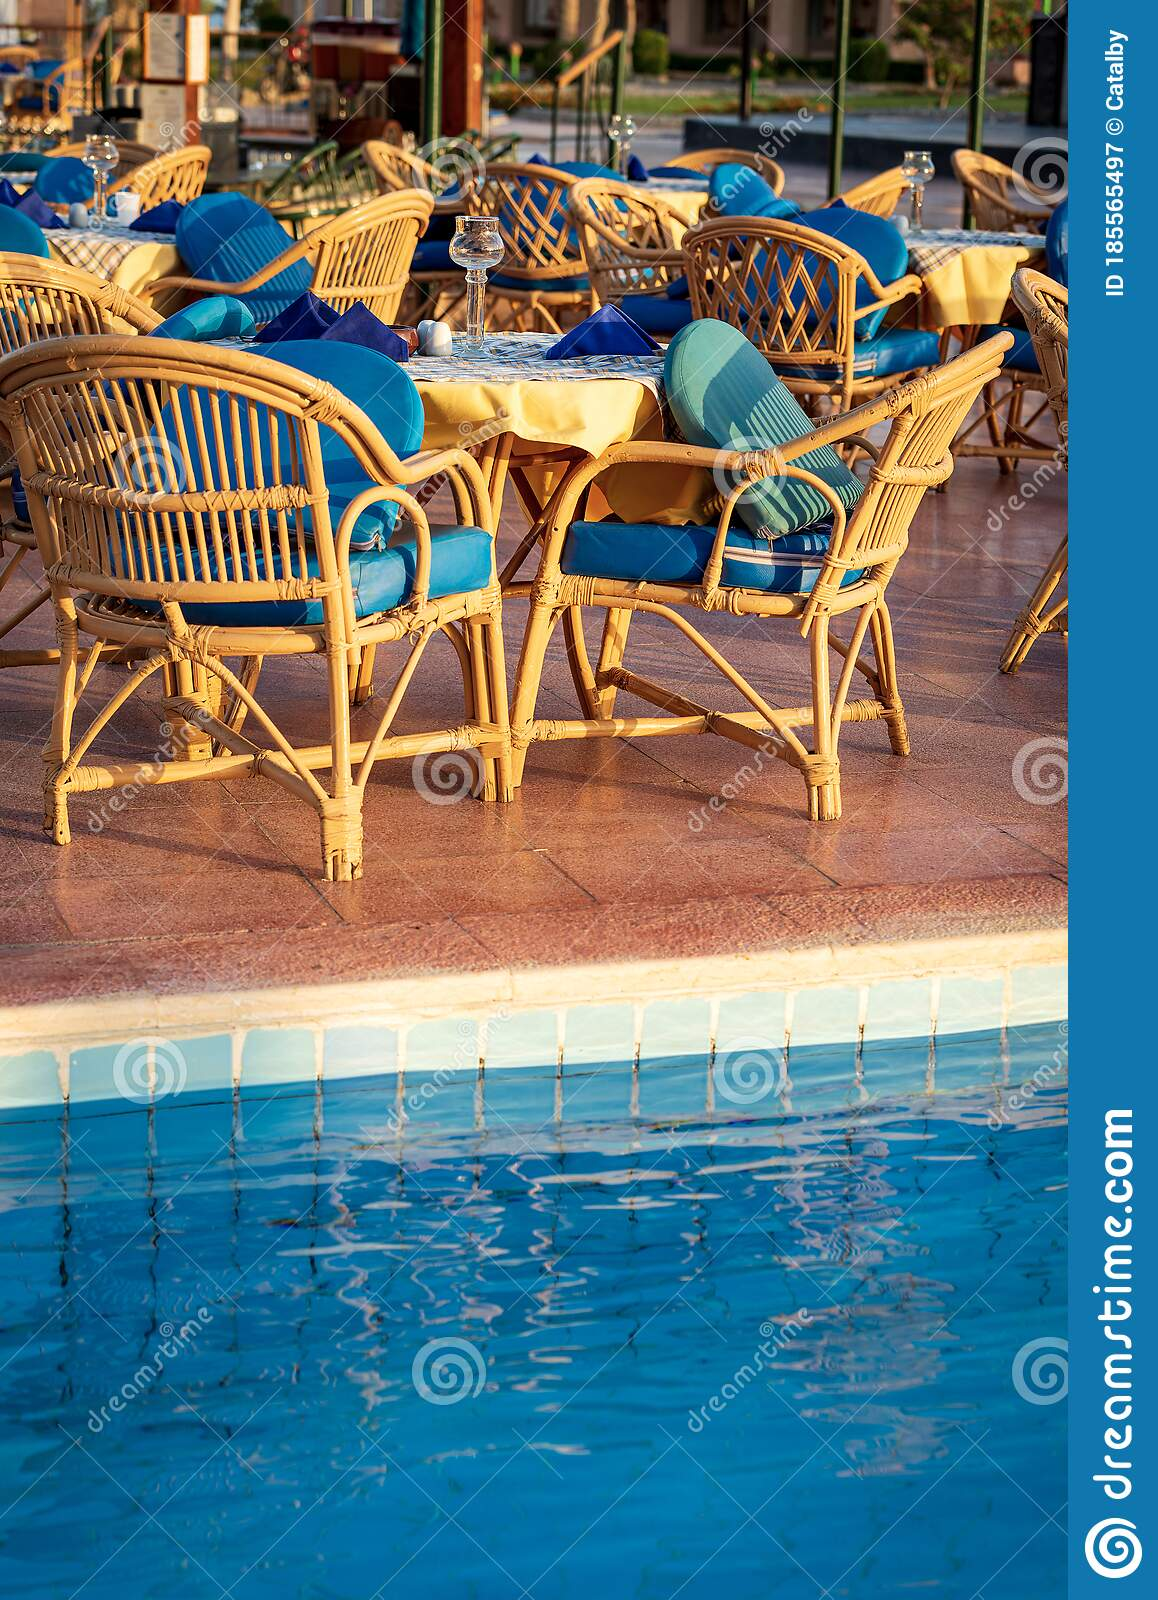 Outdoor Restaurant Poolside Set Dining Table With Wicker Chairs Stock Image Image Of Climate Patio 185565497